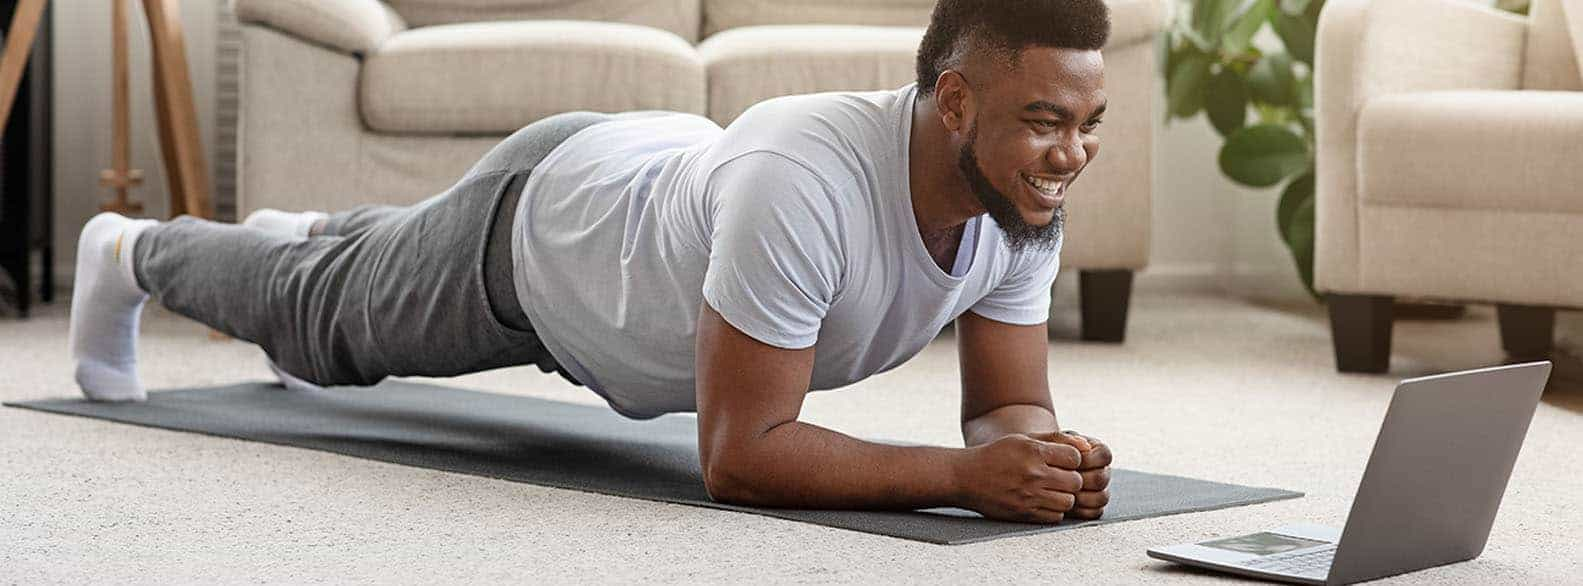 6 Ways To Stay Fit At Home